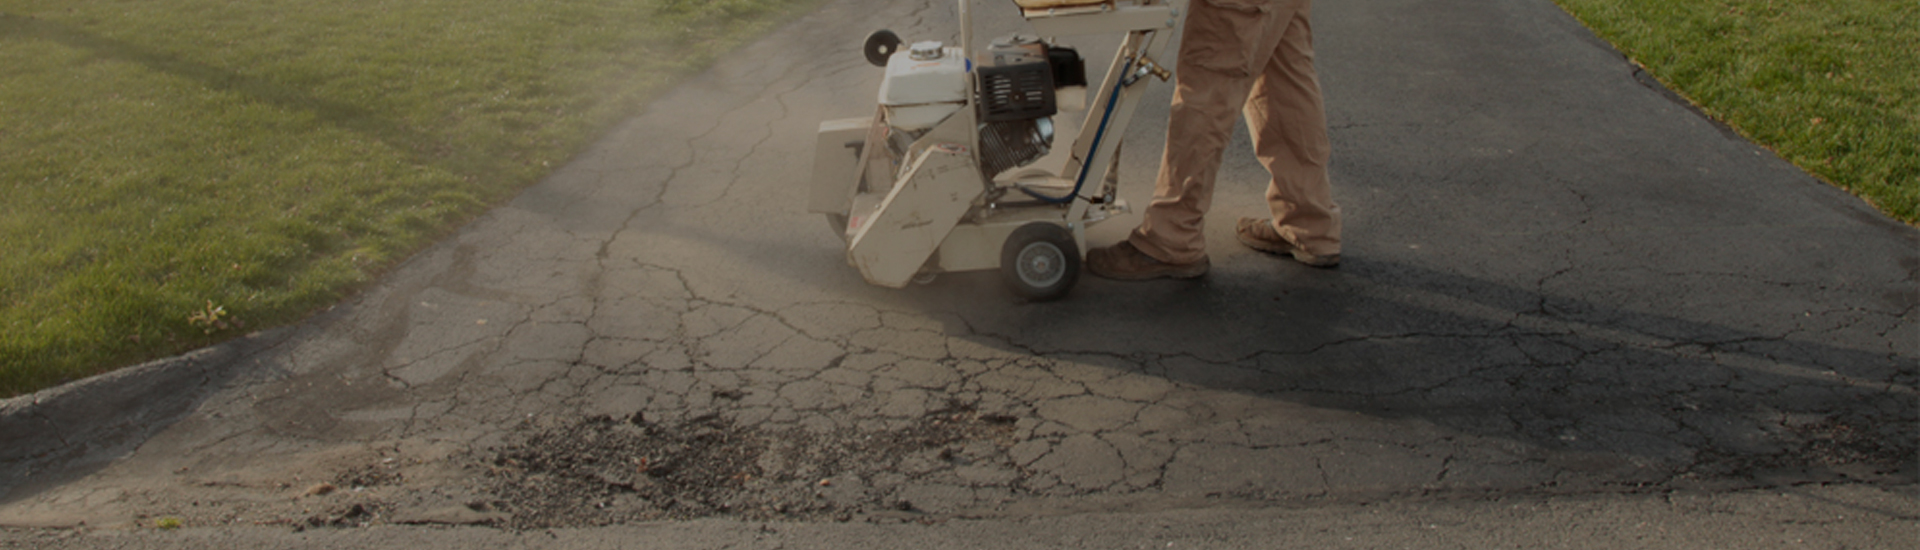 Cutting out damaged asphalt